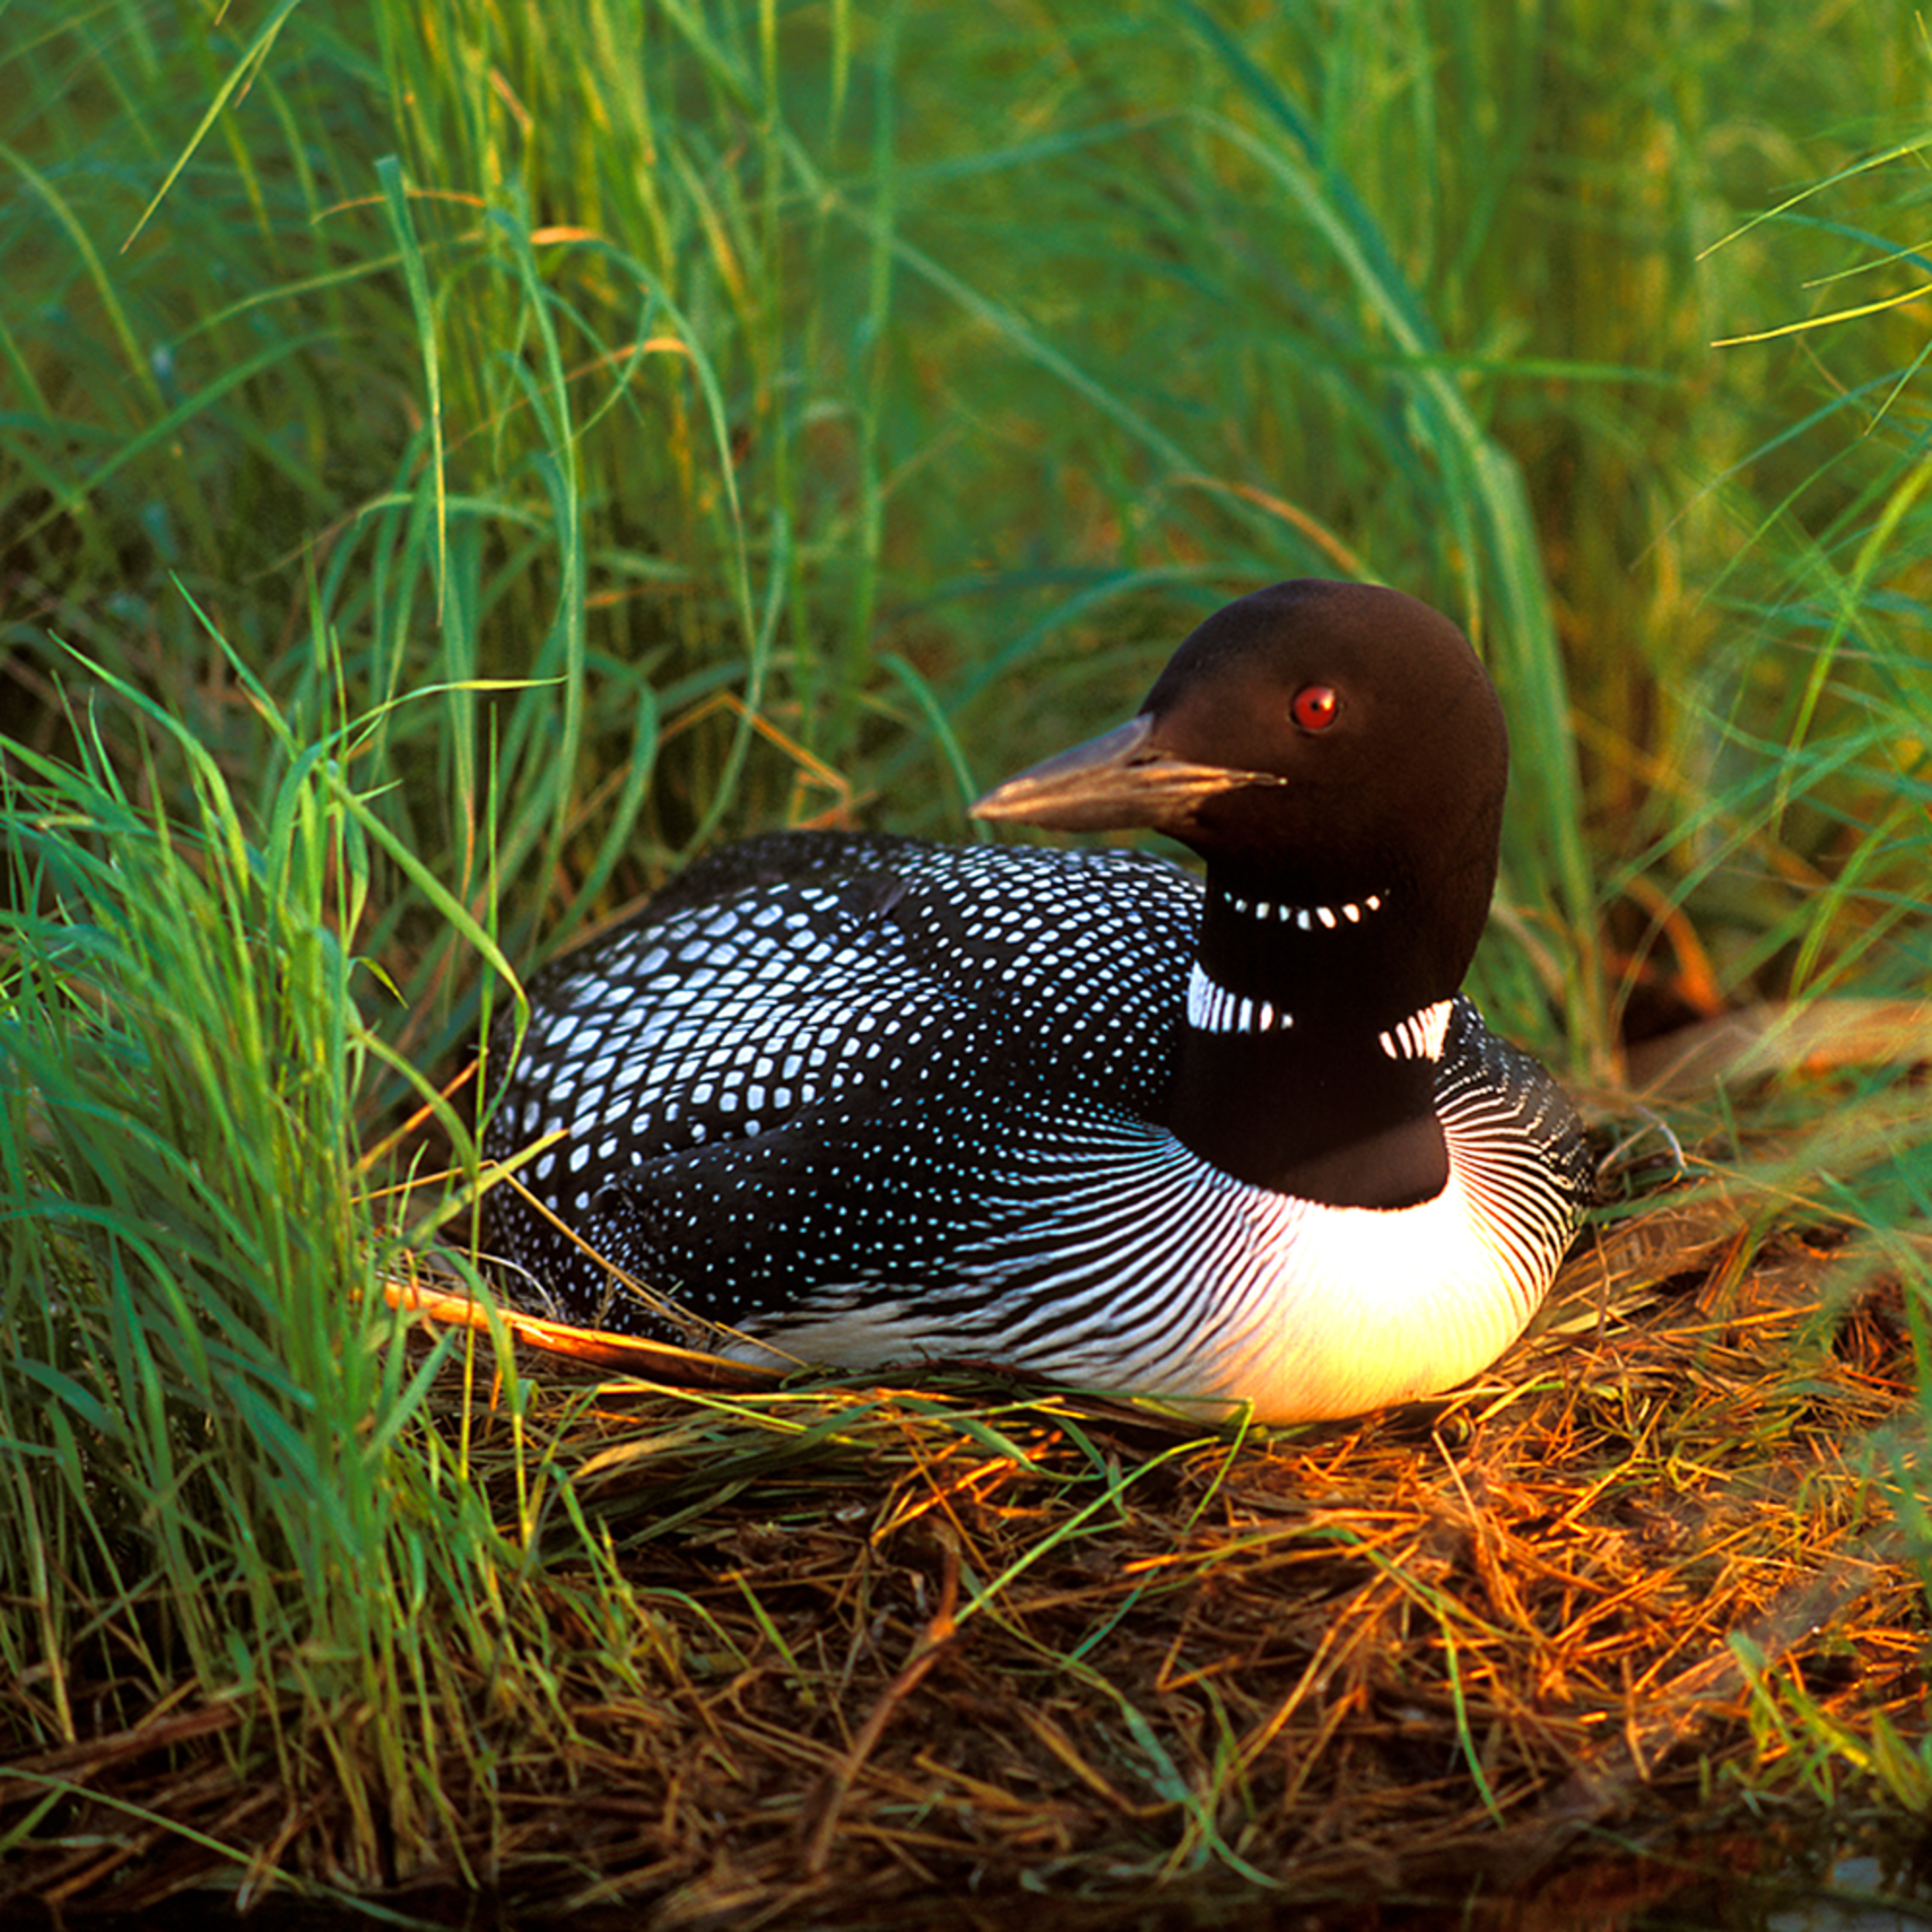 Dp06 loon on nest vyh3a5